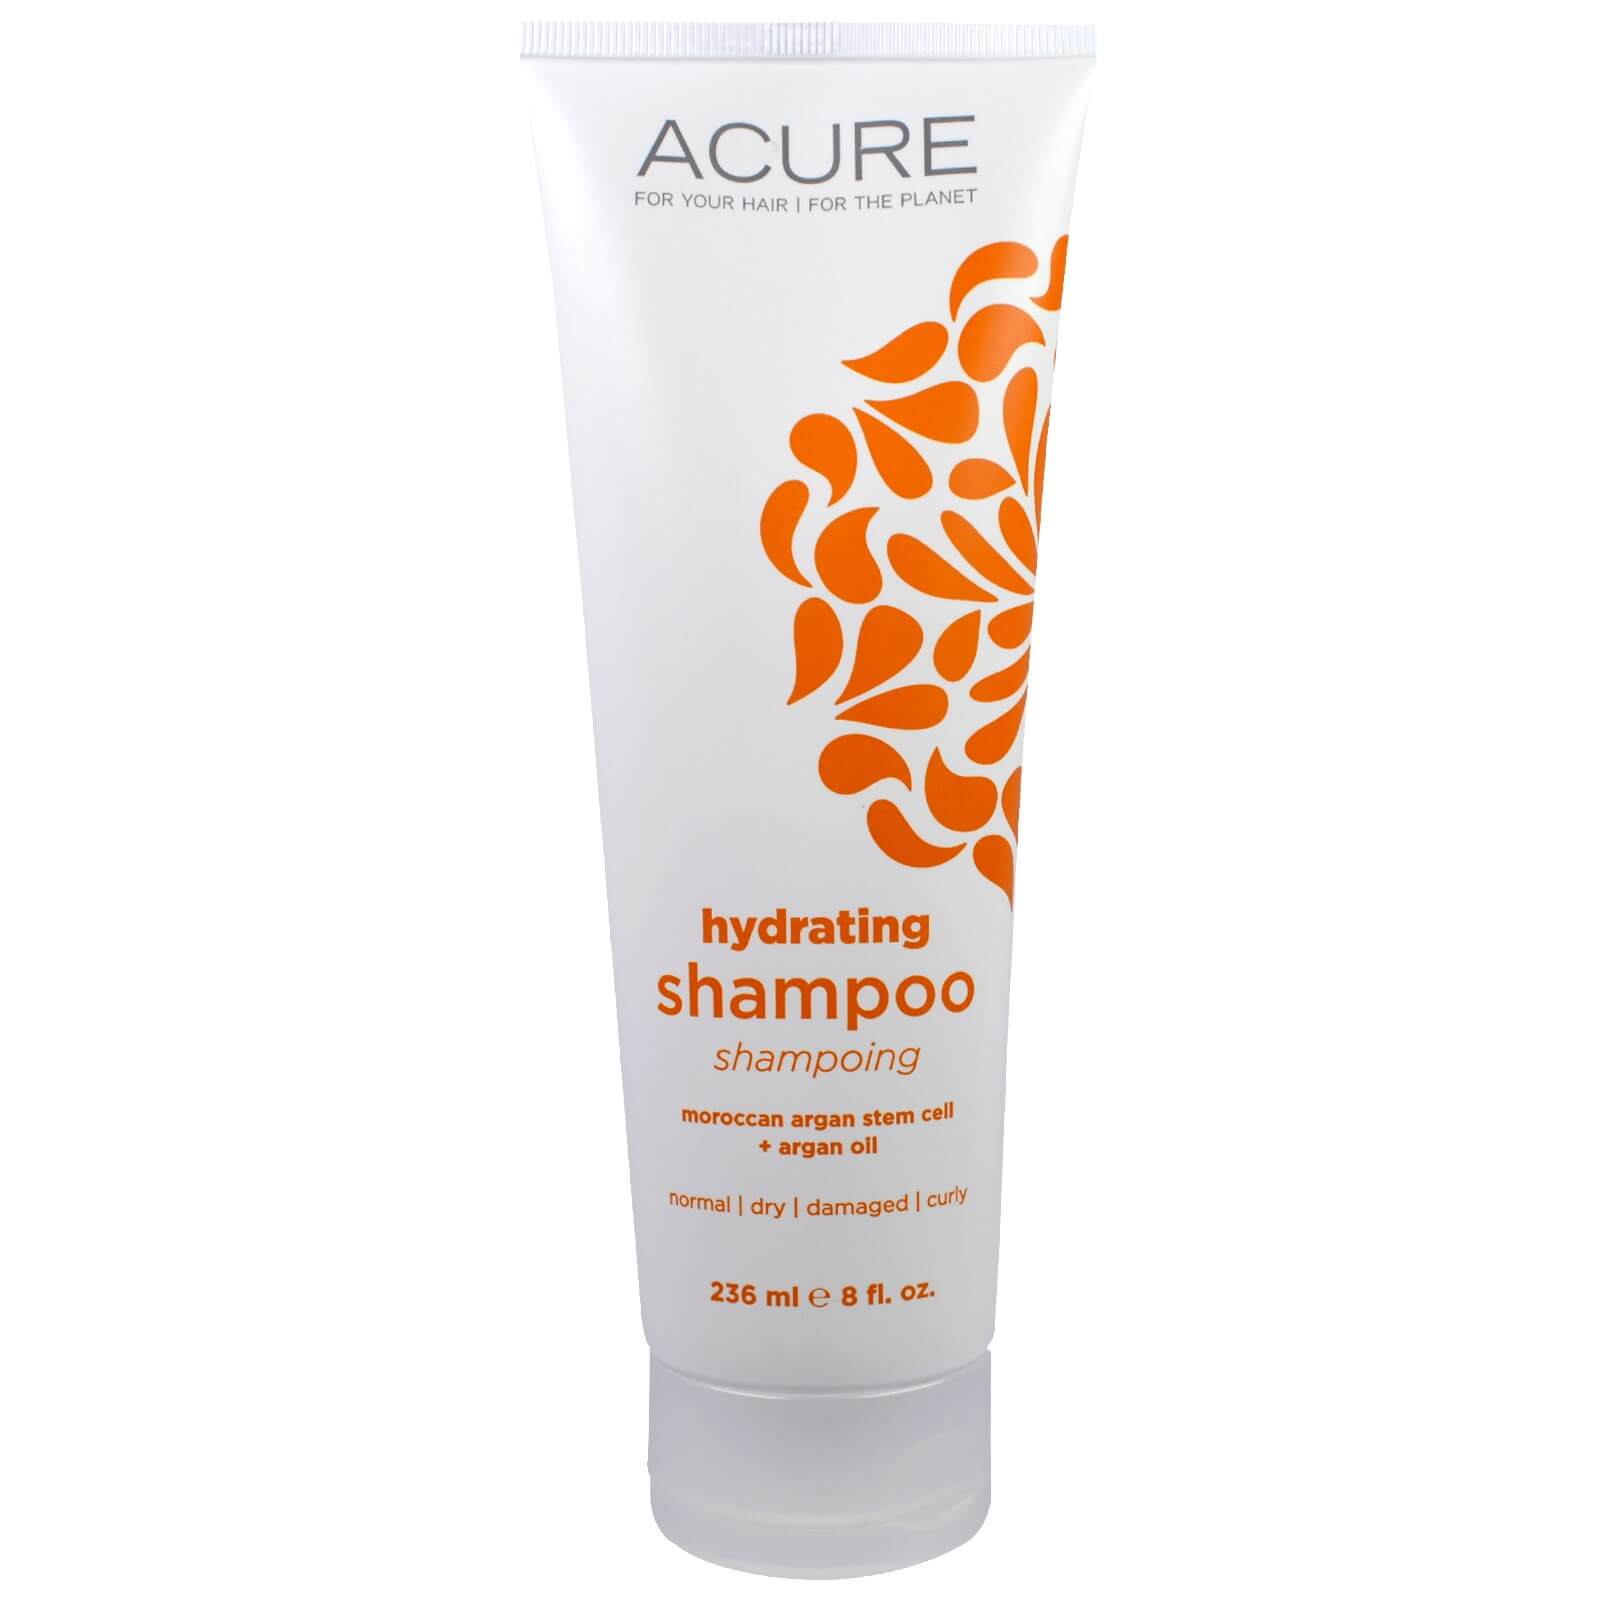 Acure Hydrating Shampoo Review: Safe And Effective